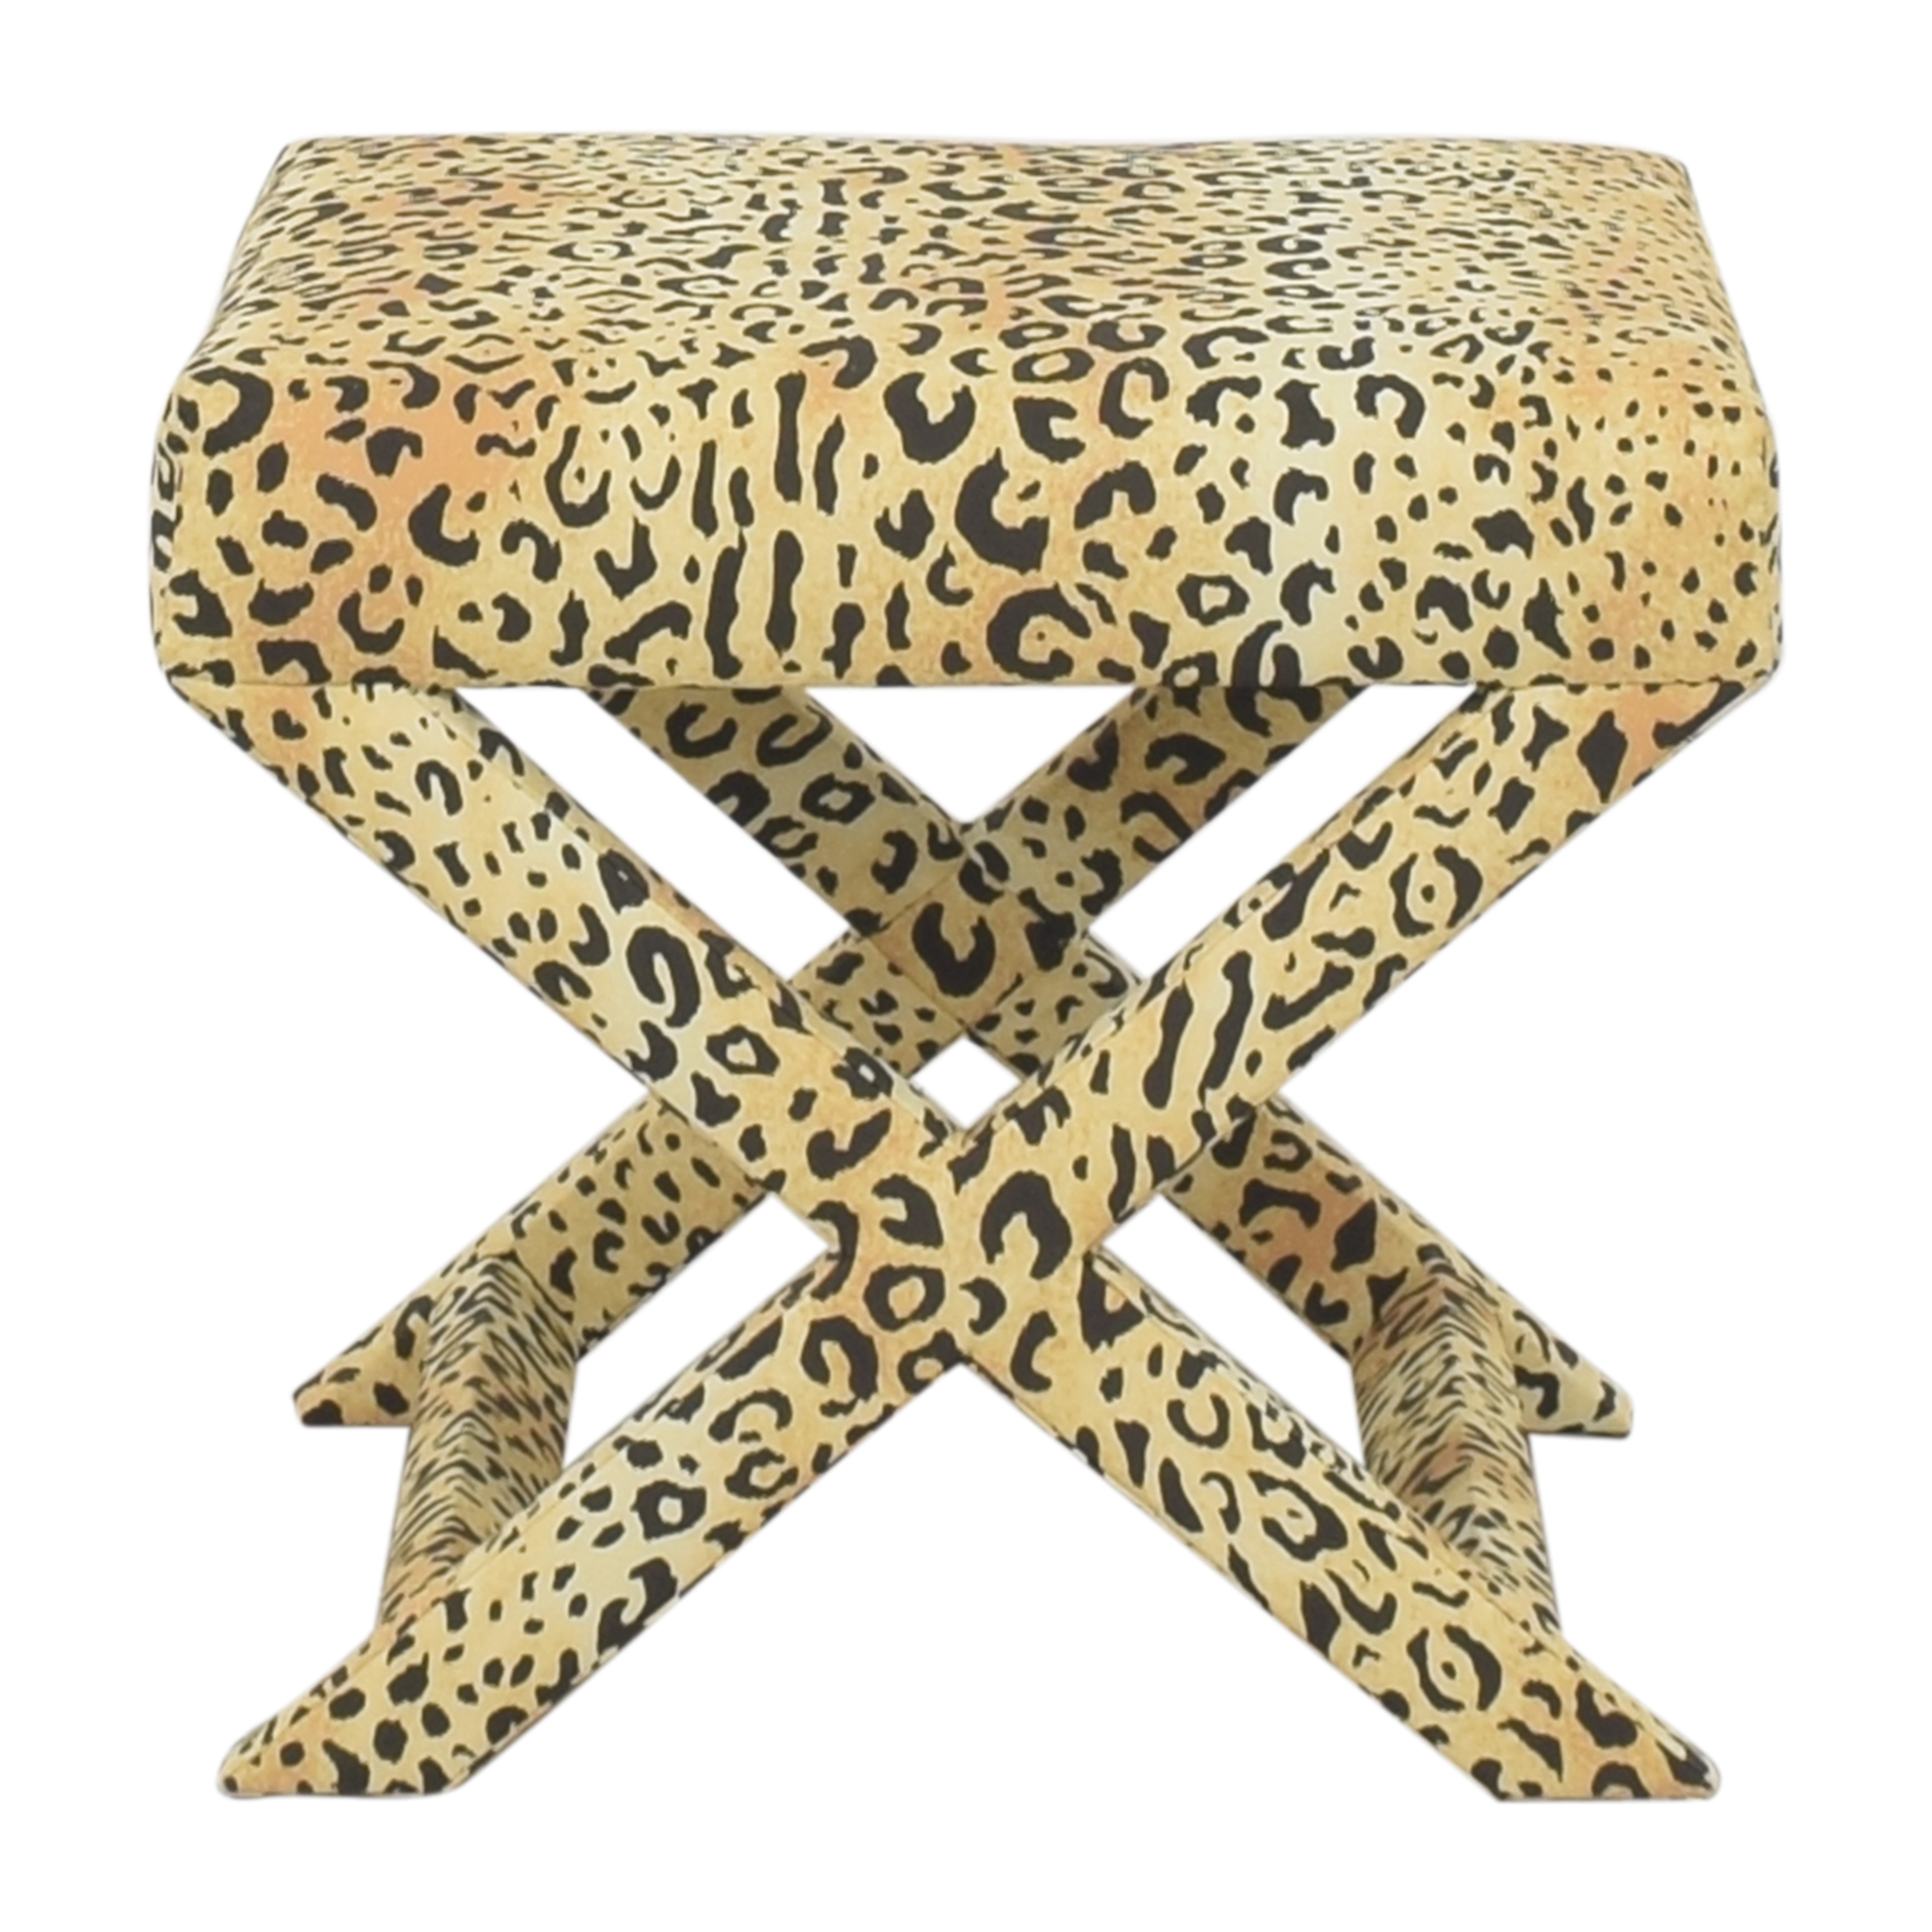 buy The Inside Leopard X Bench The Inside